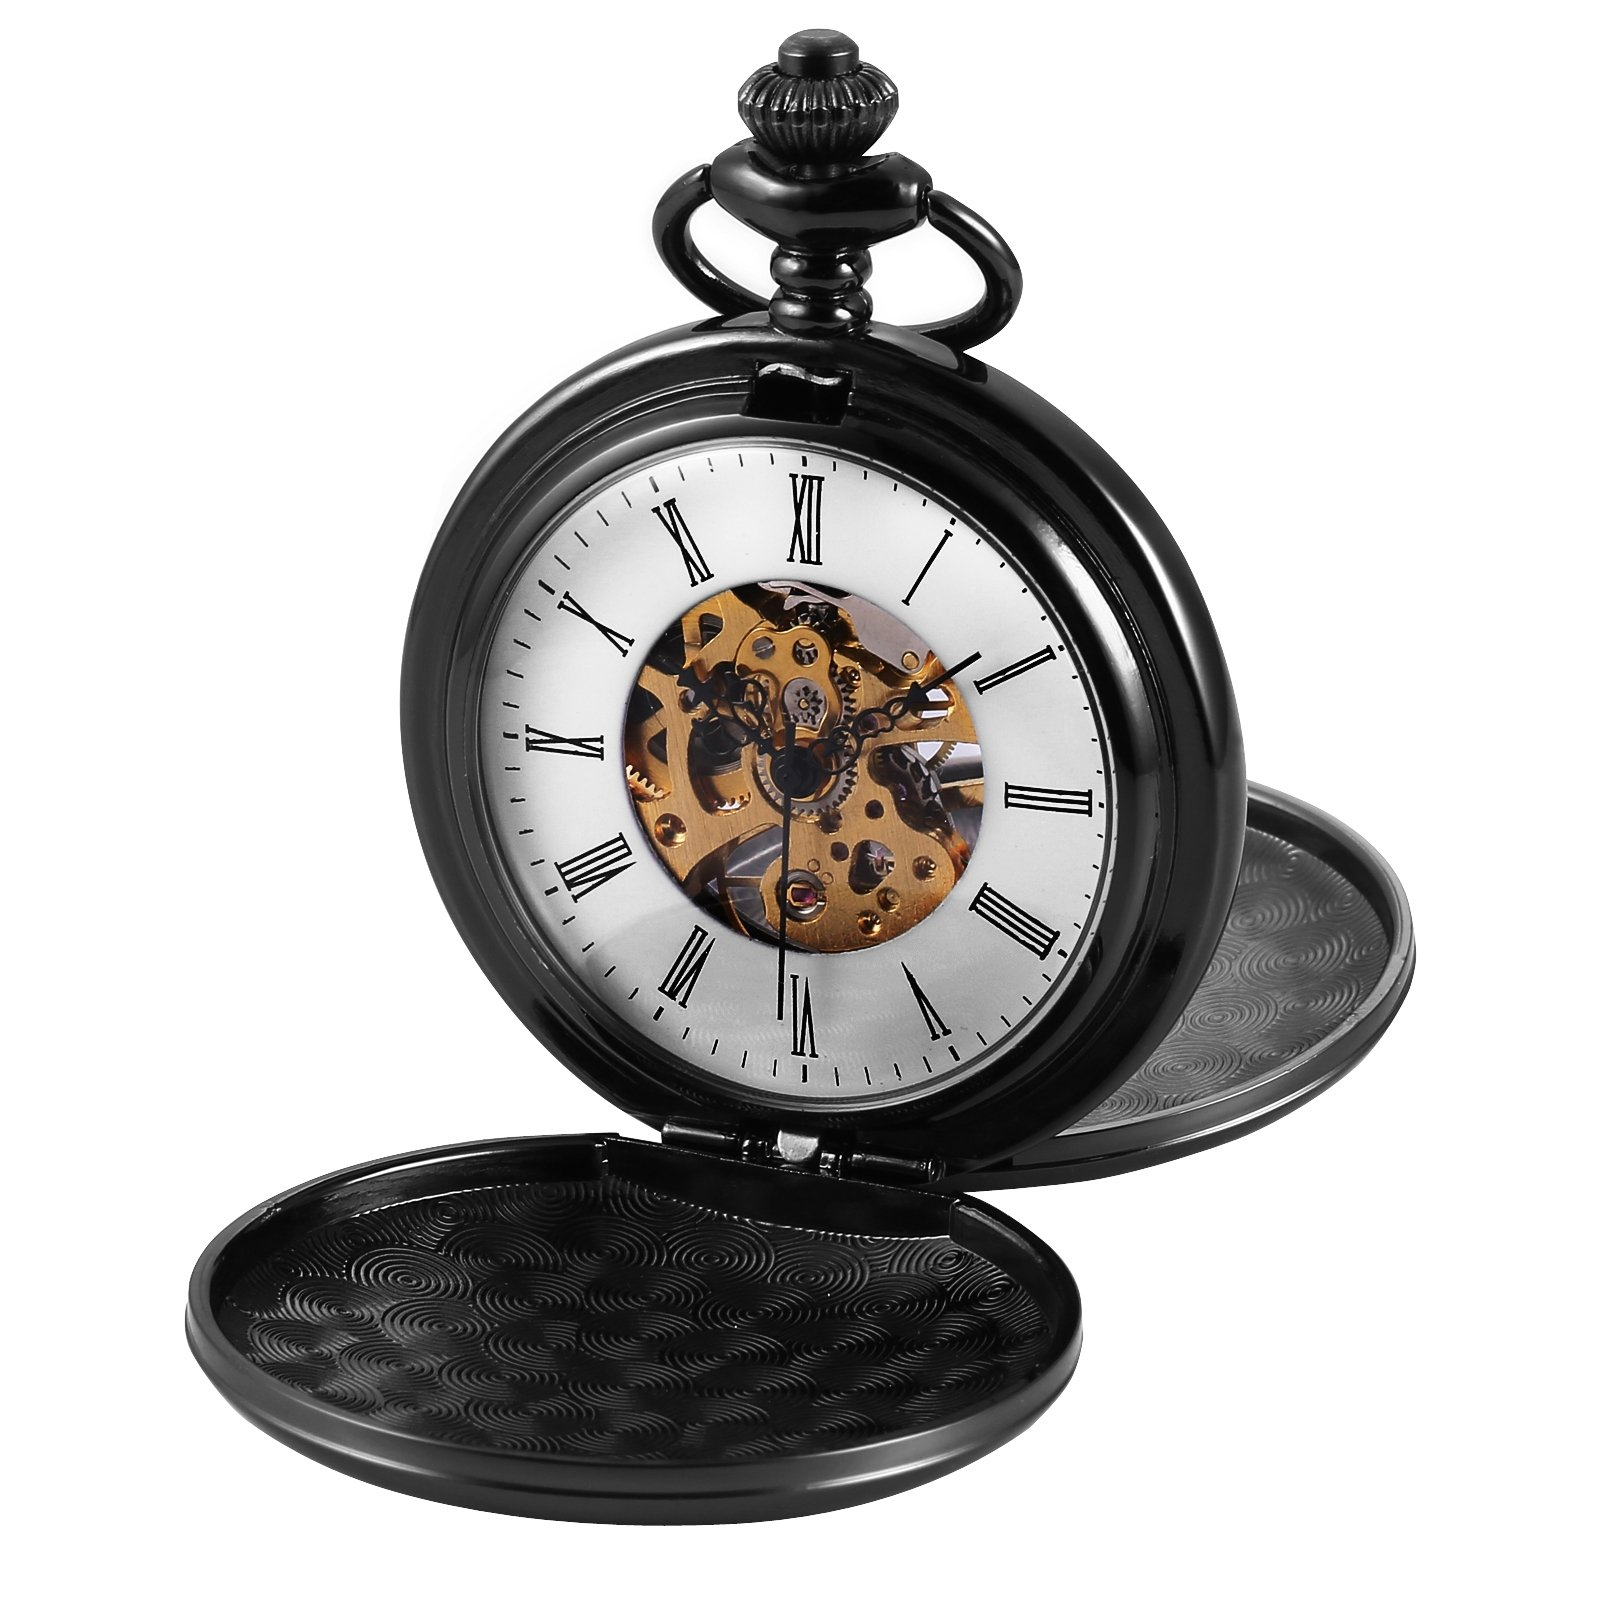 AMPM24 Double Hunter Black Case Mechanical Pocket Watch WPK229